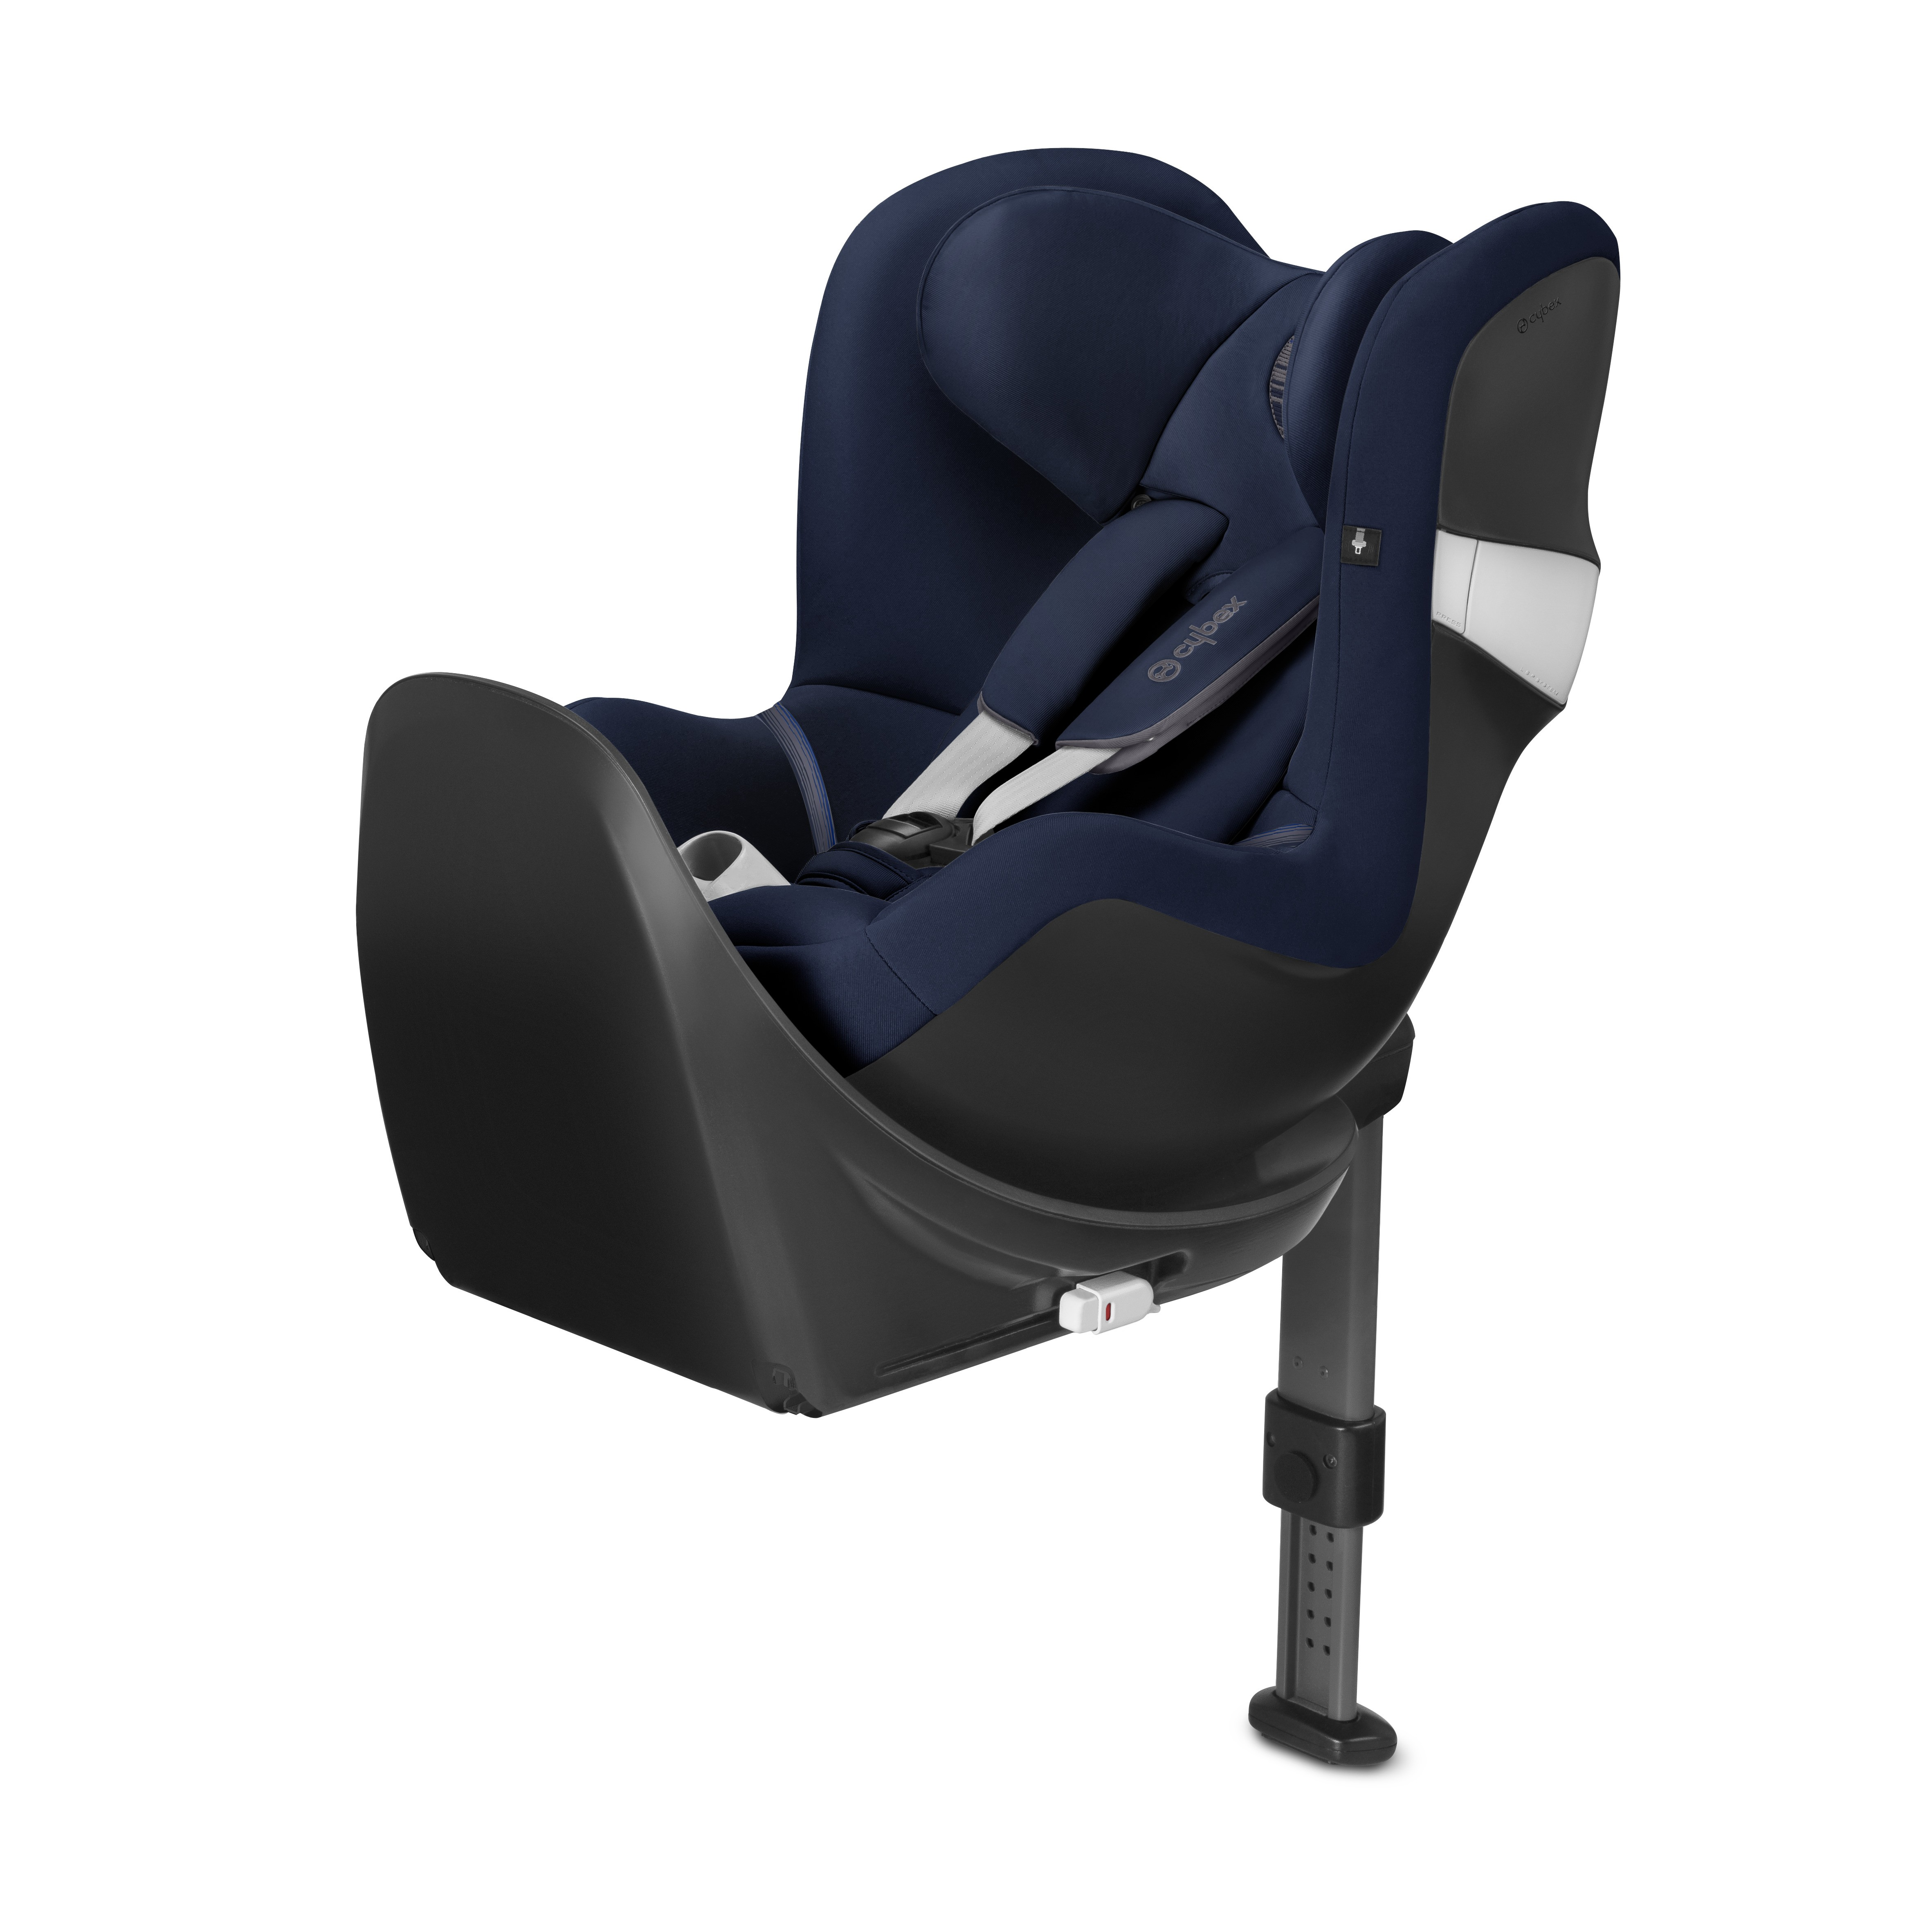 Автокресло Cybex Sirona M2 i-Size и база Base M Denim Blue, цвет темно-синий